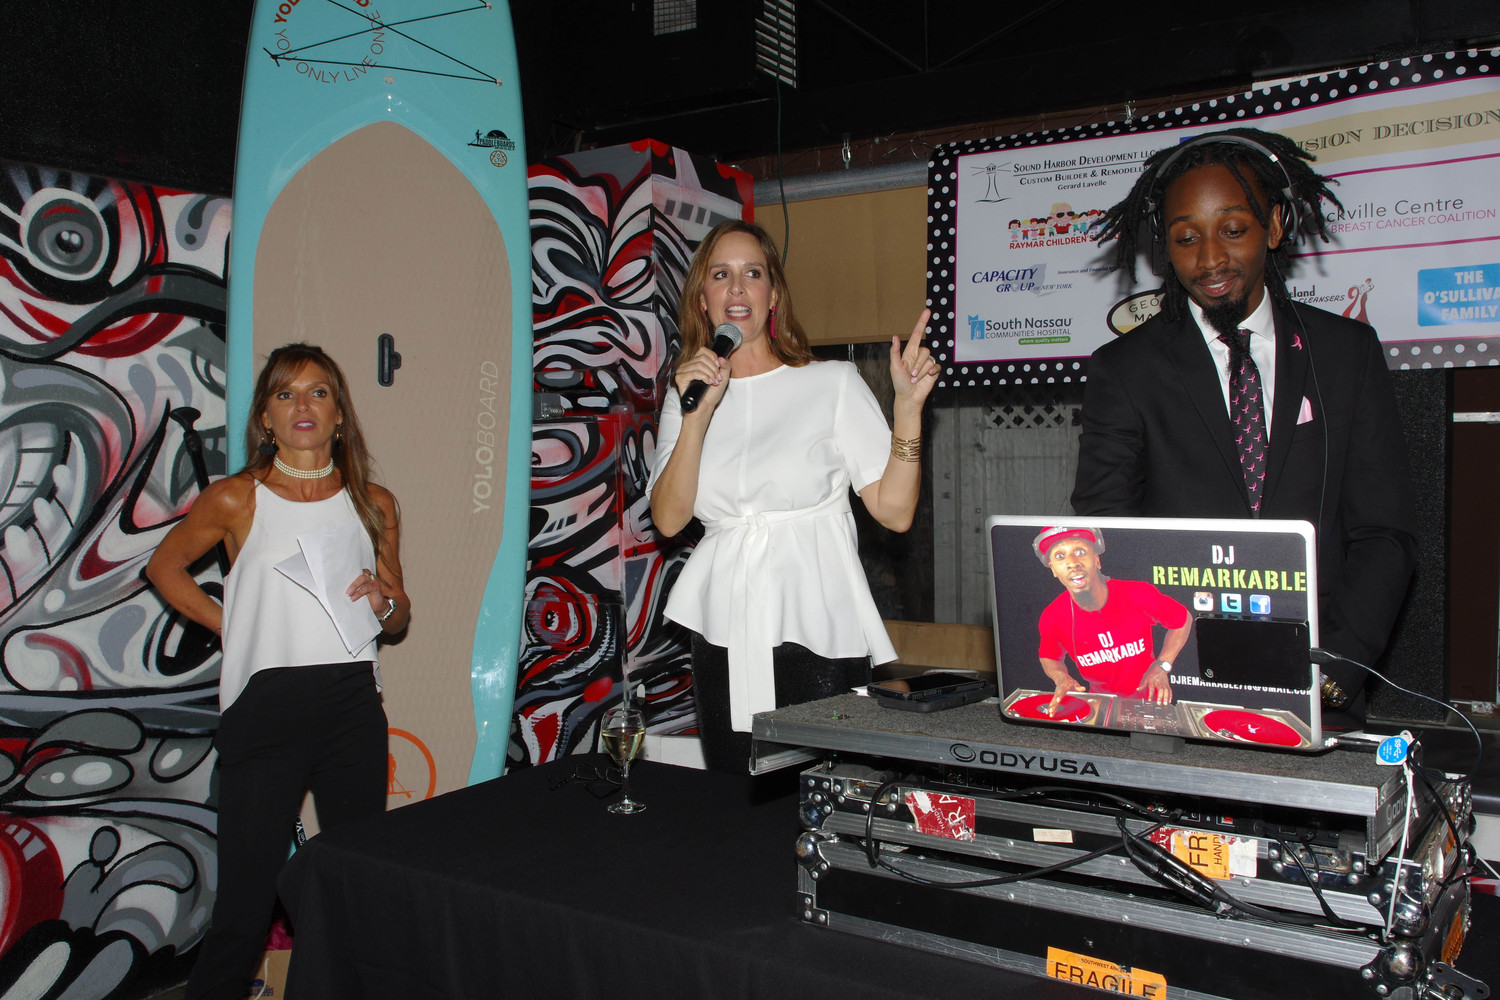 Erin O'Sullivan, center, addressed the crowd alongside Nicole Graziano, as DJ Remarkable spun some tunes.